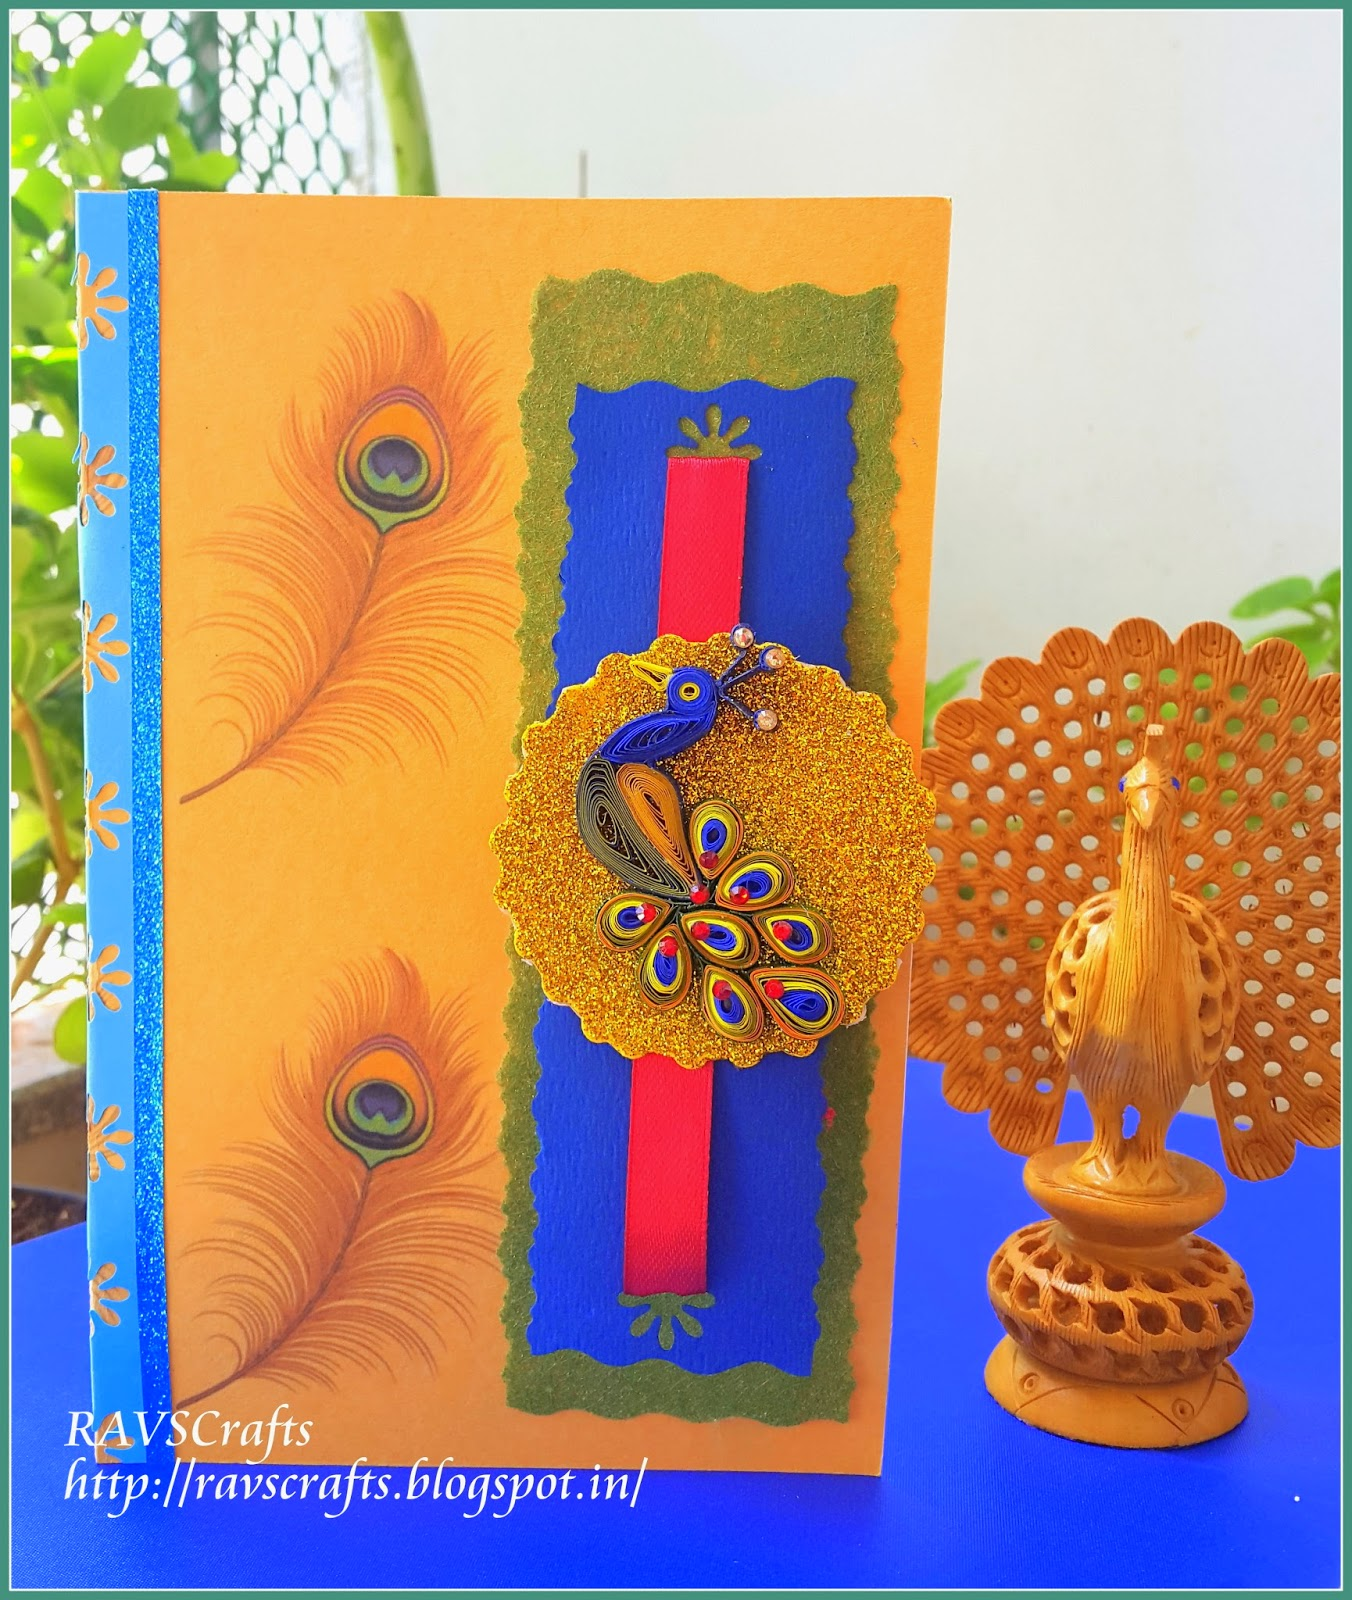 Ravscrafts Raksha Bandhan Card Pop Up Card